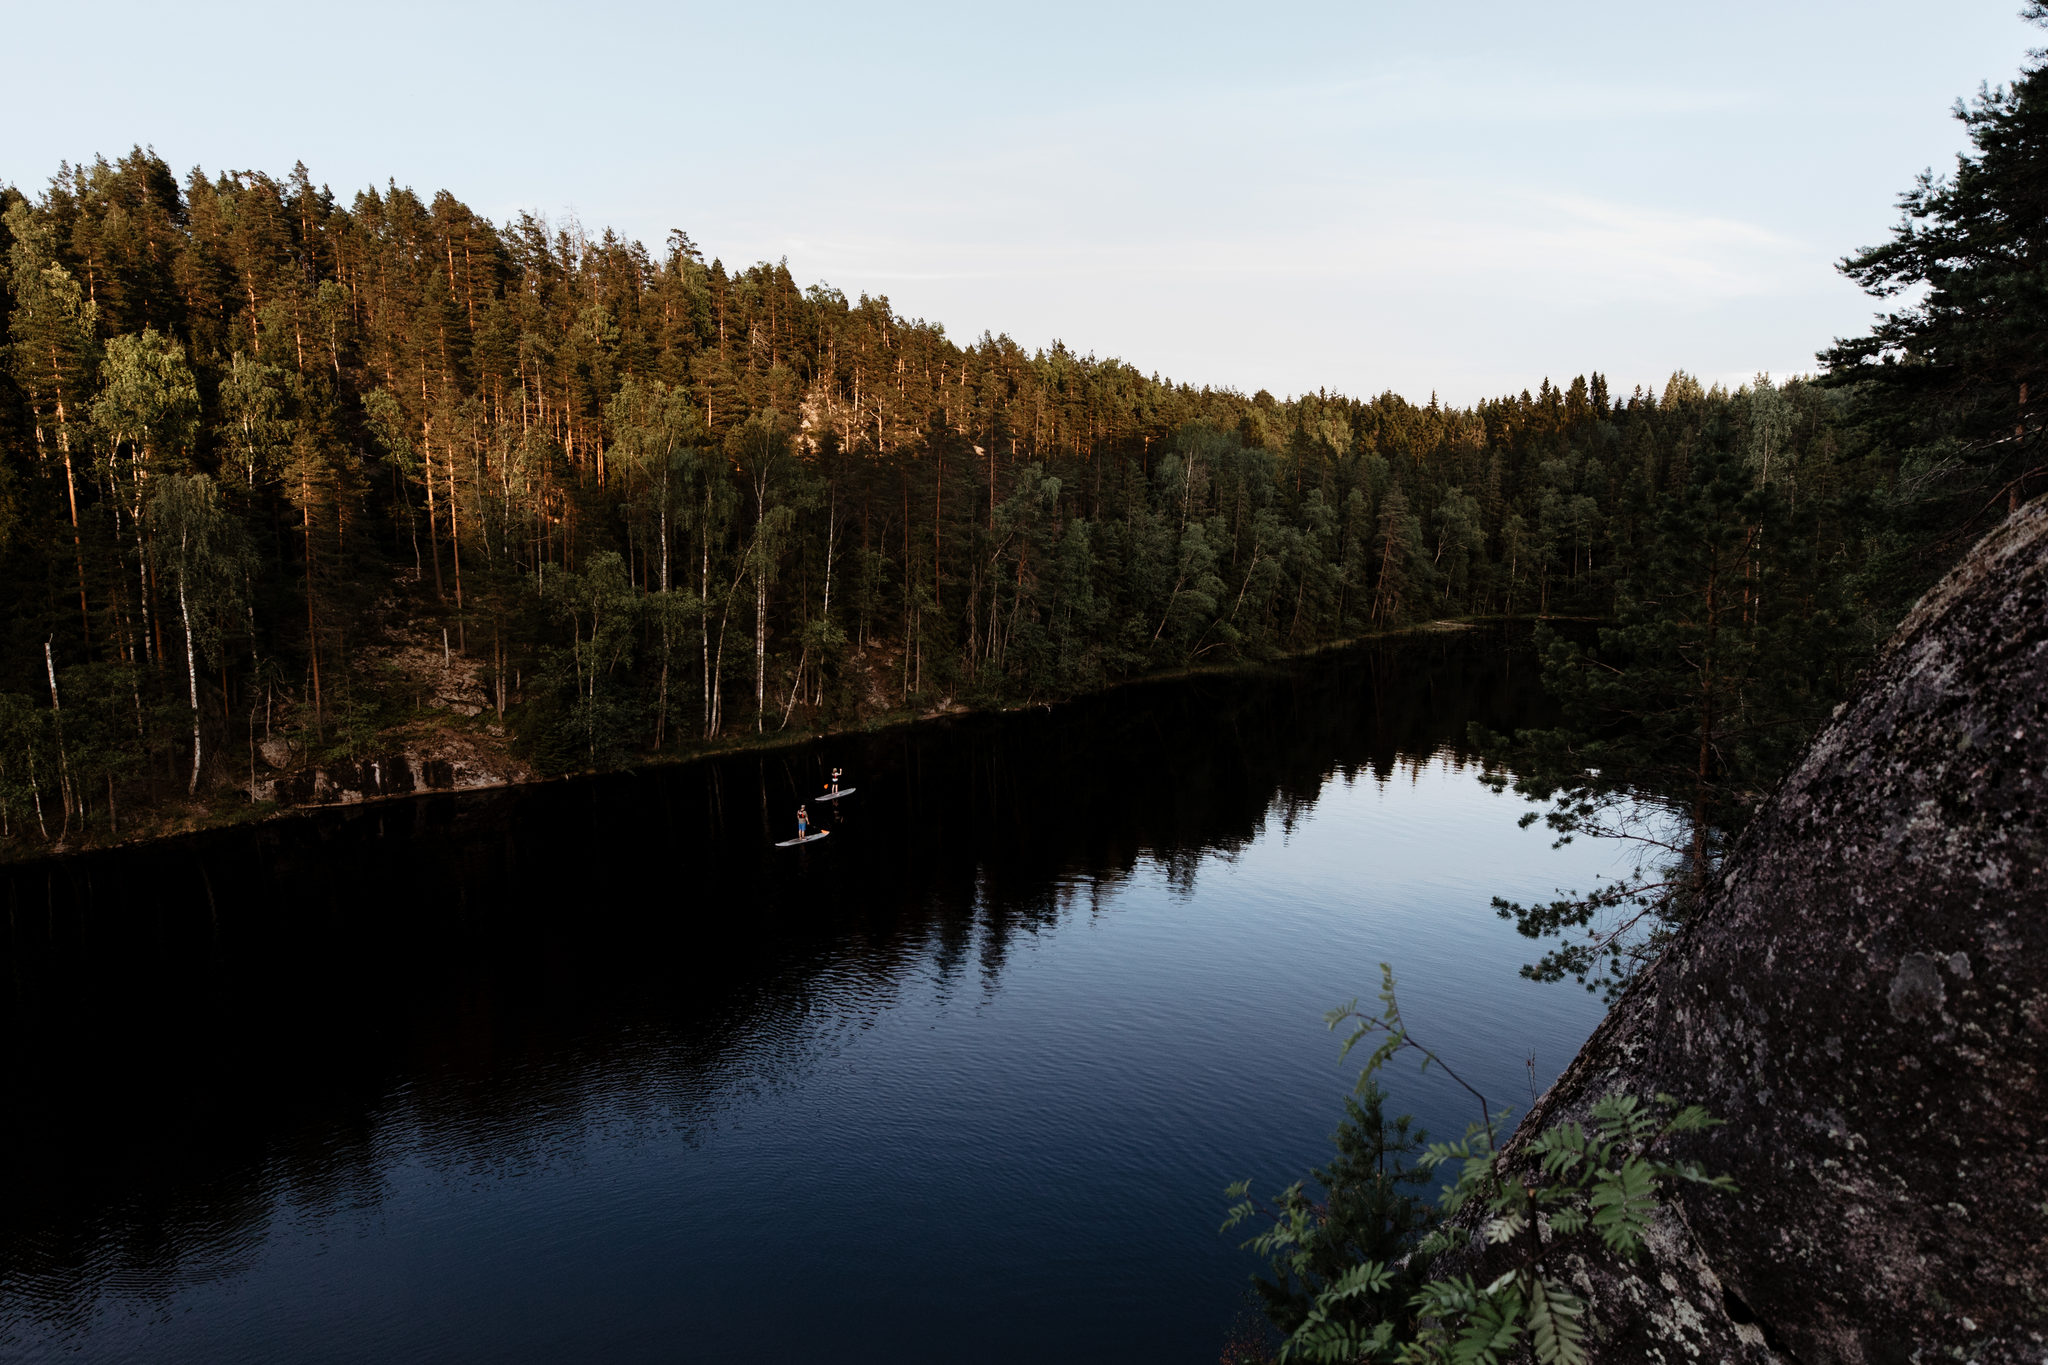 Canoe tours in Nuuksio National Park